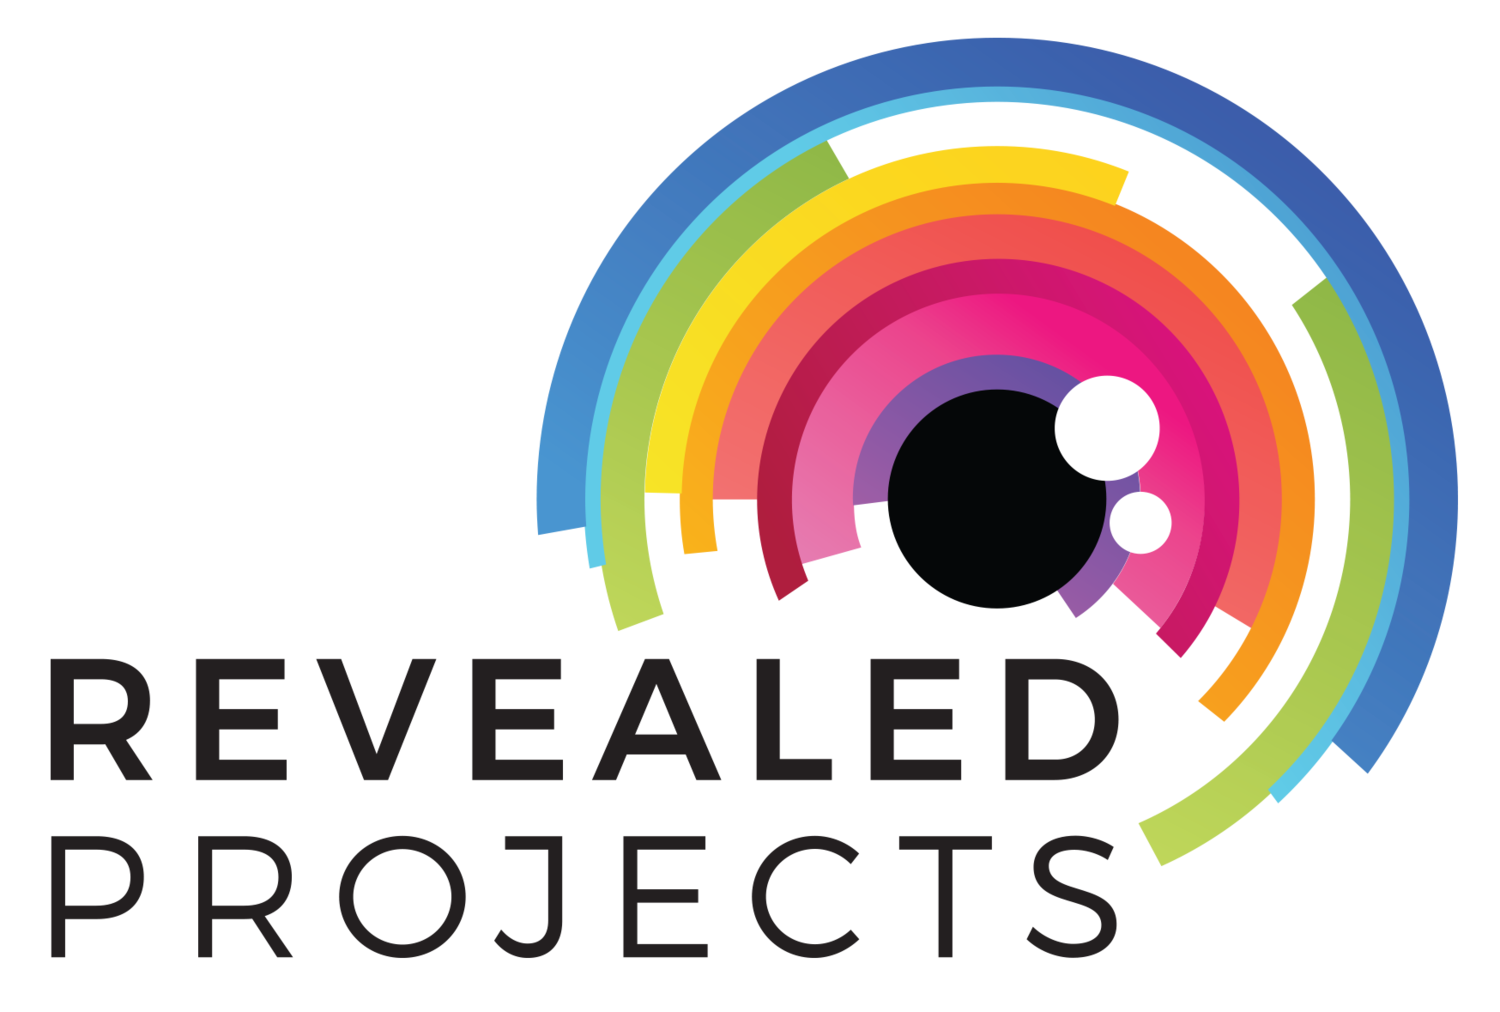 Revealed Projects